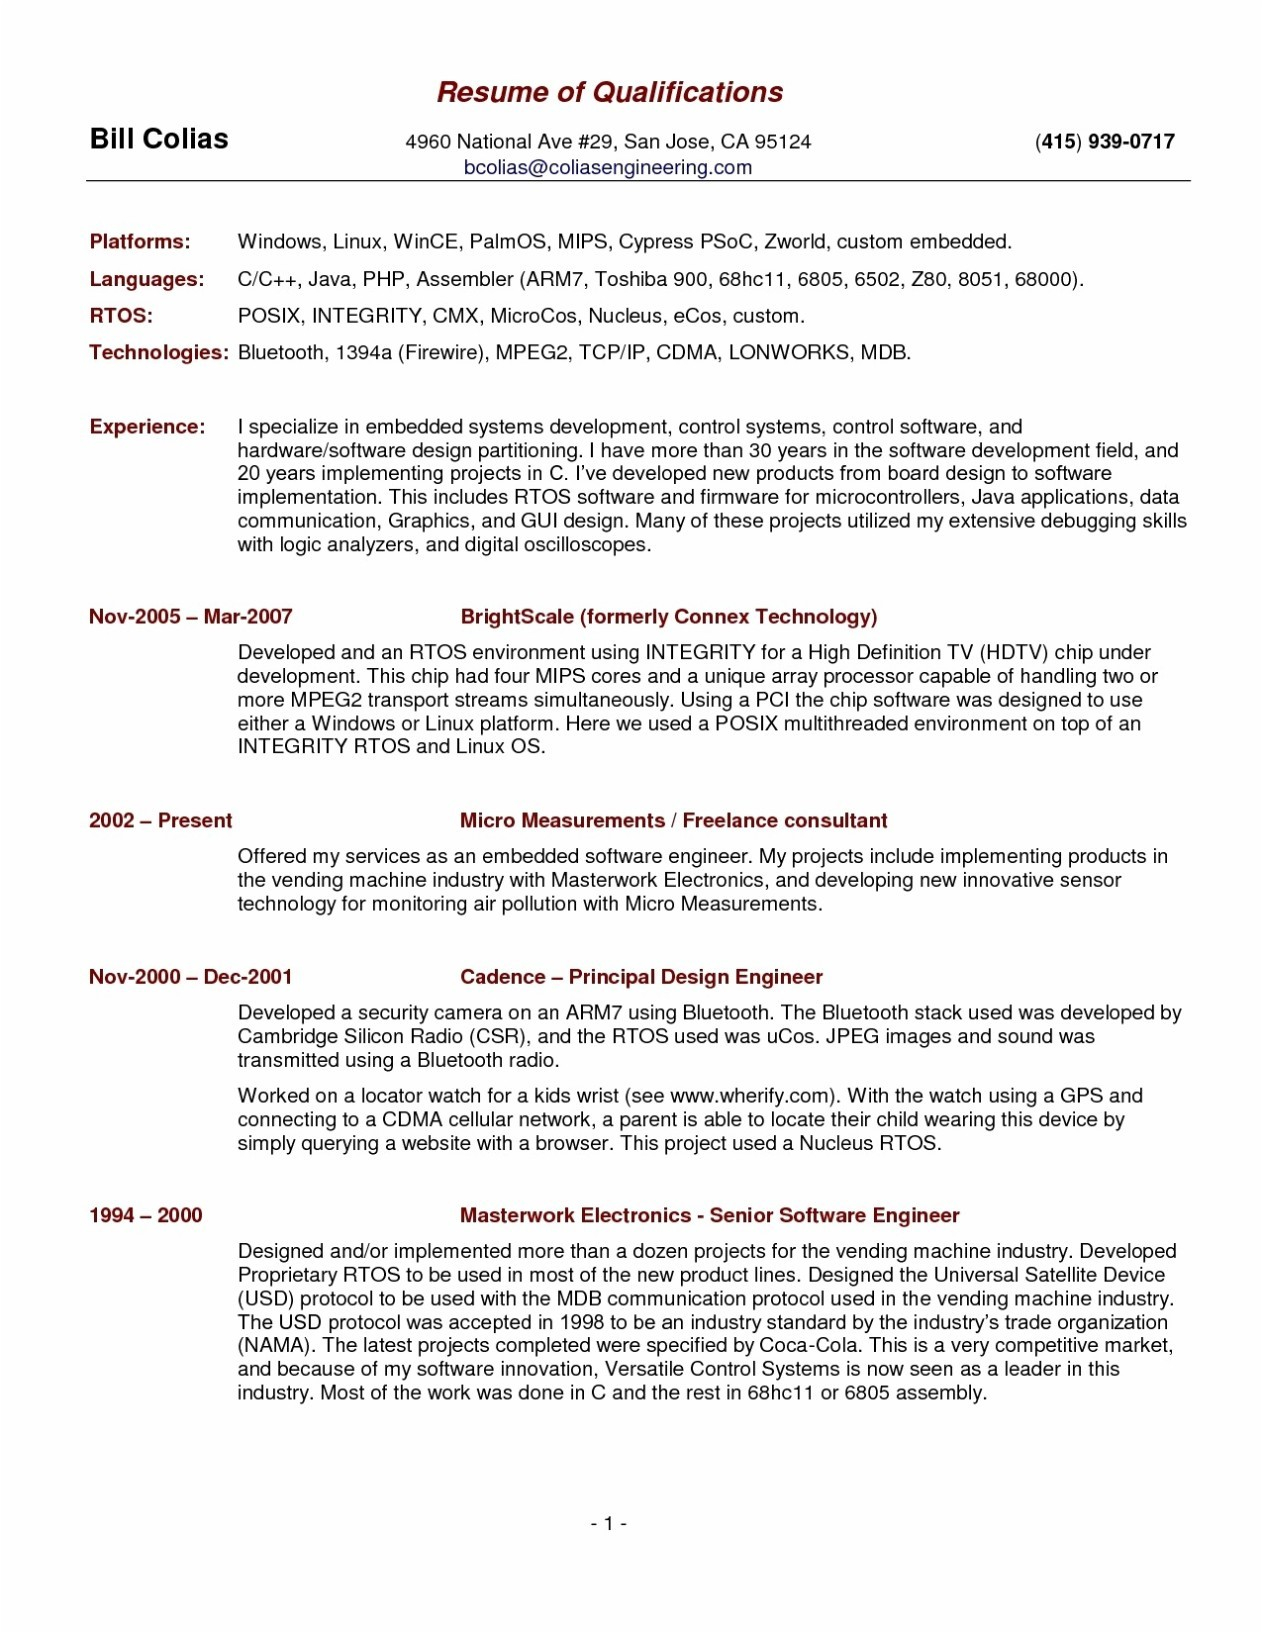 Software Engineer Resume Template Microsoft Word - 23 Student Resume Template Word